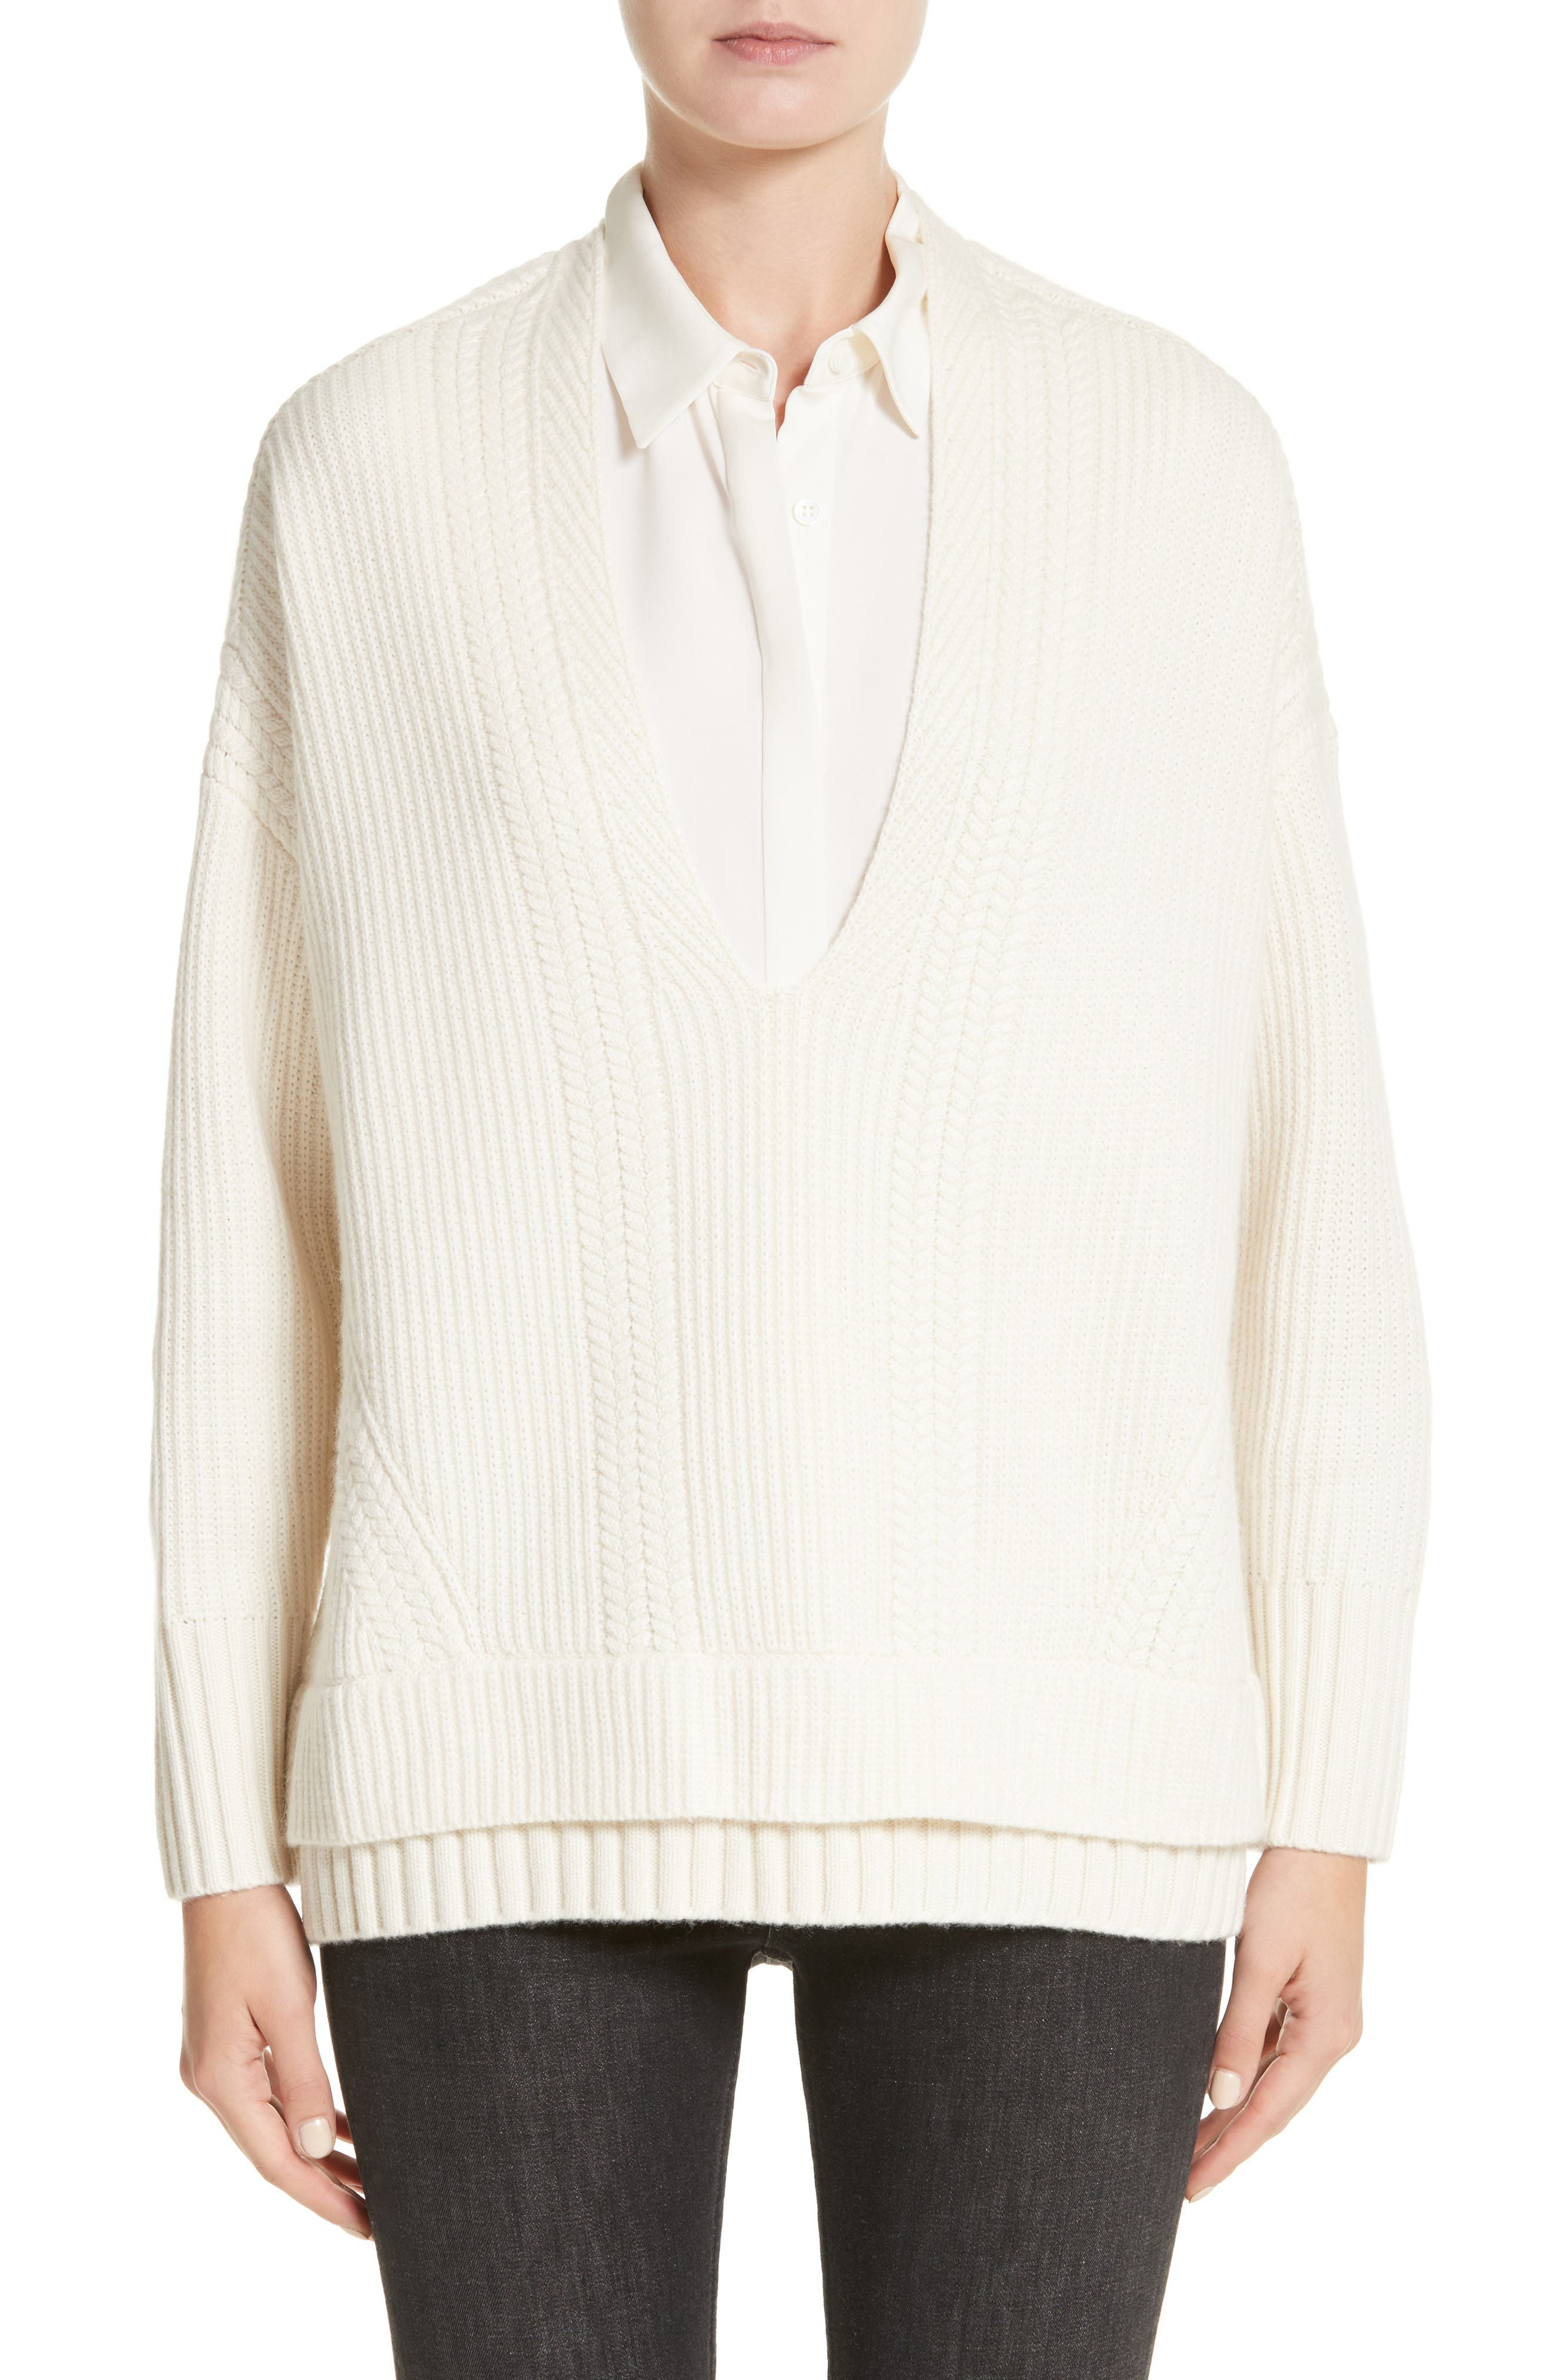 Main Image - Burberry Santerno Wool & Cashmere Cable Knit Sweater